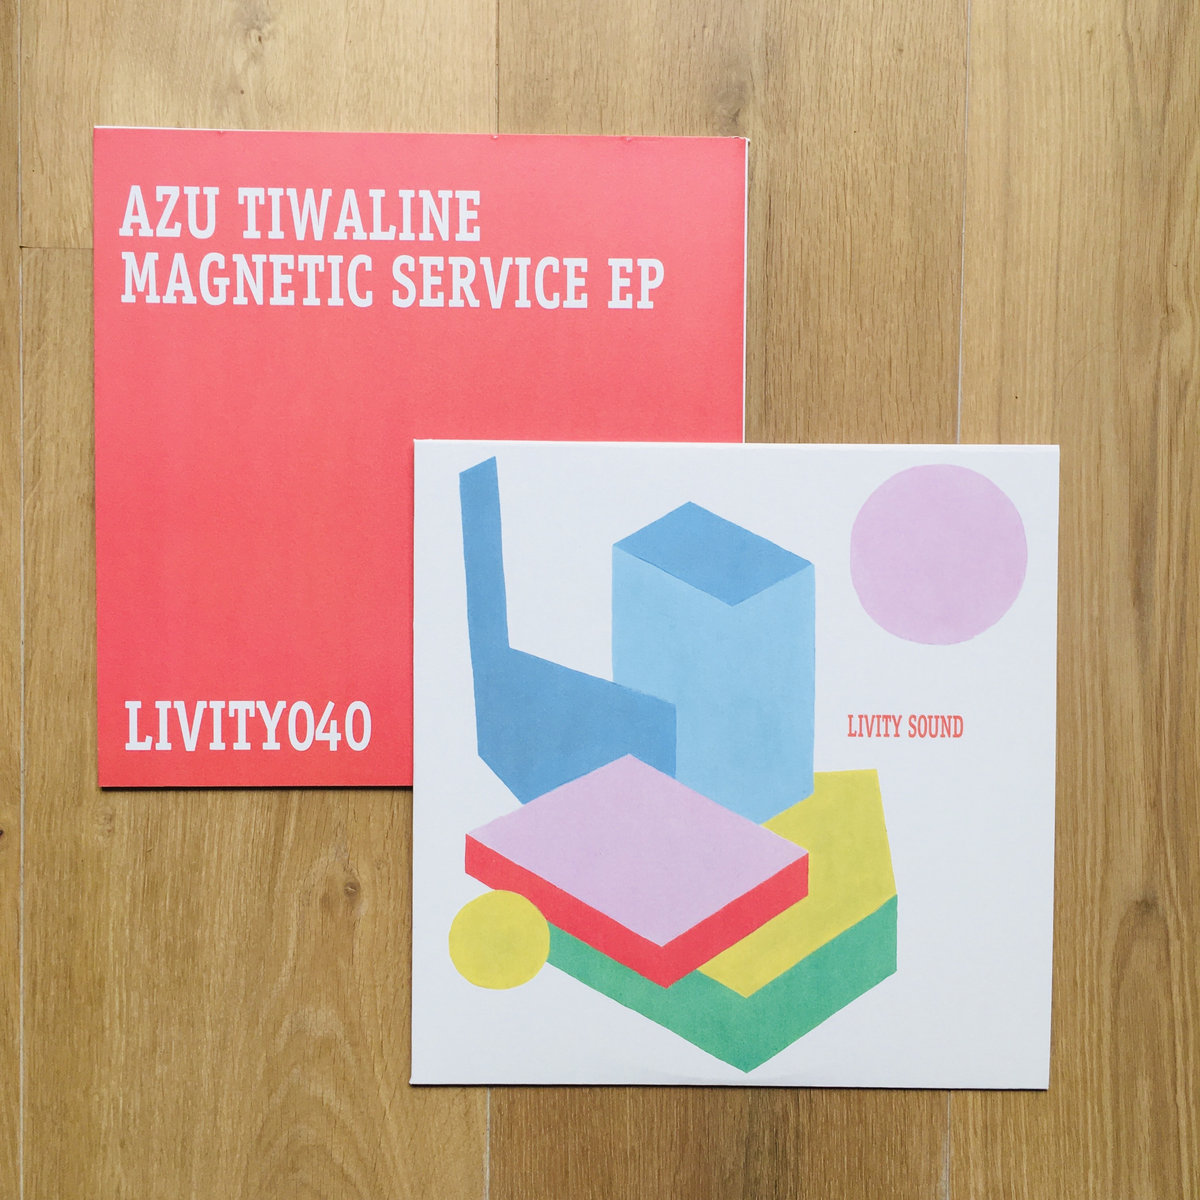 Azu Tiwaline debuts on Livity Sound with new EP.